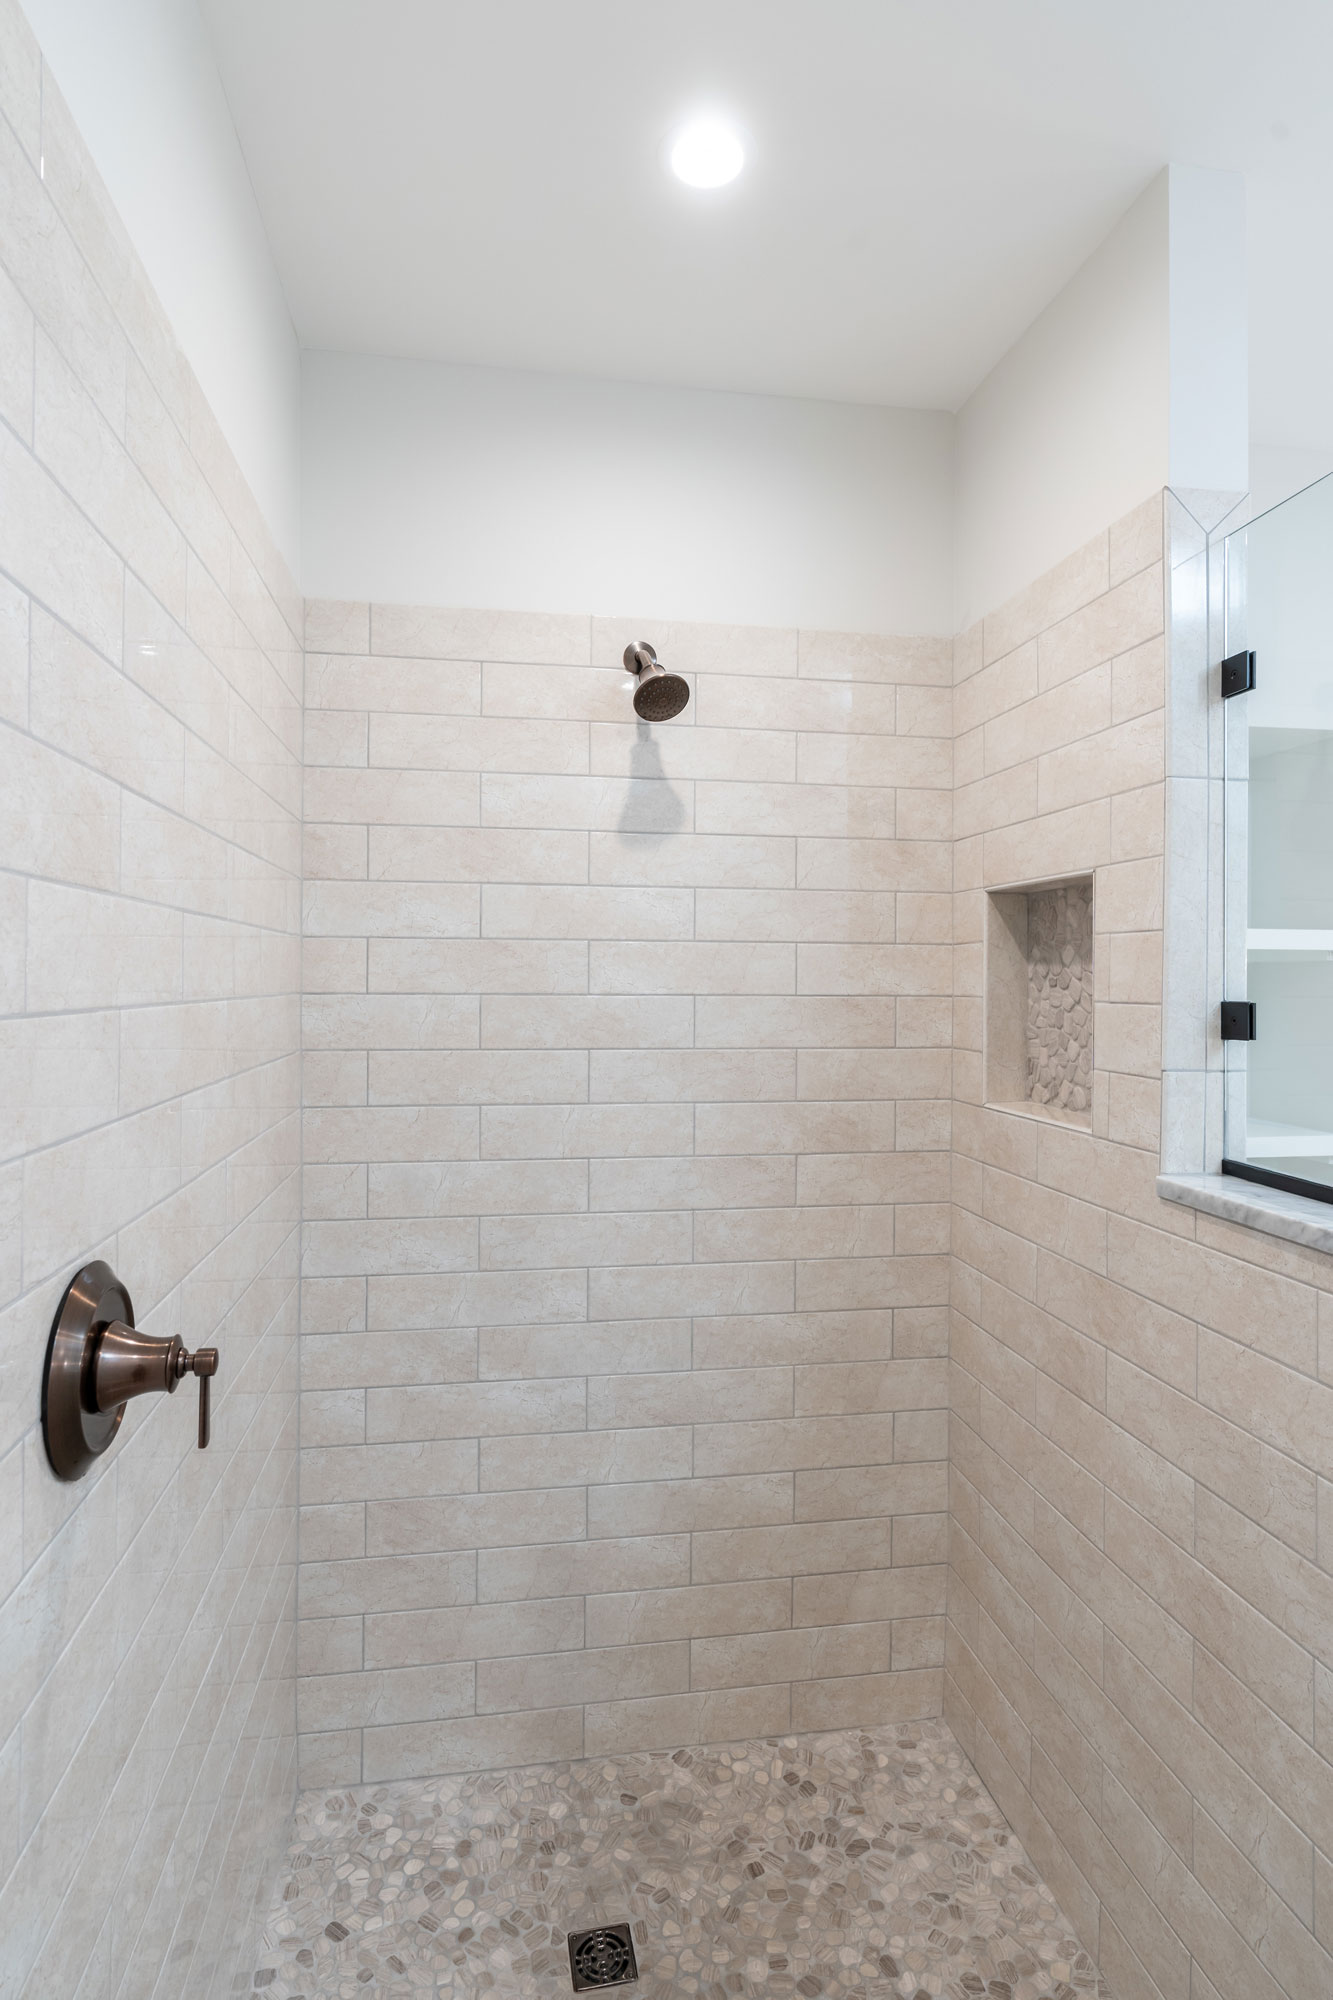 Basement bath shower with stone tiled floor.